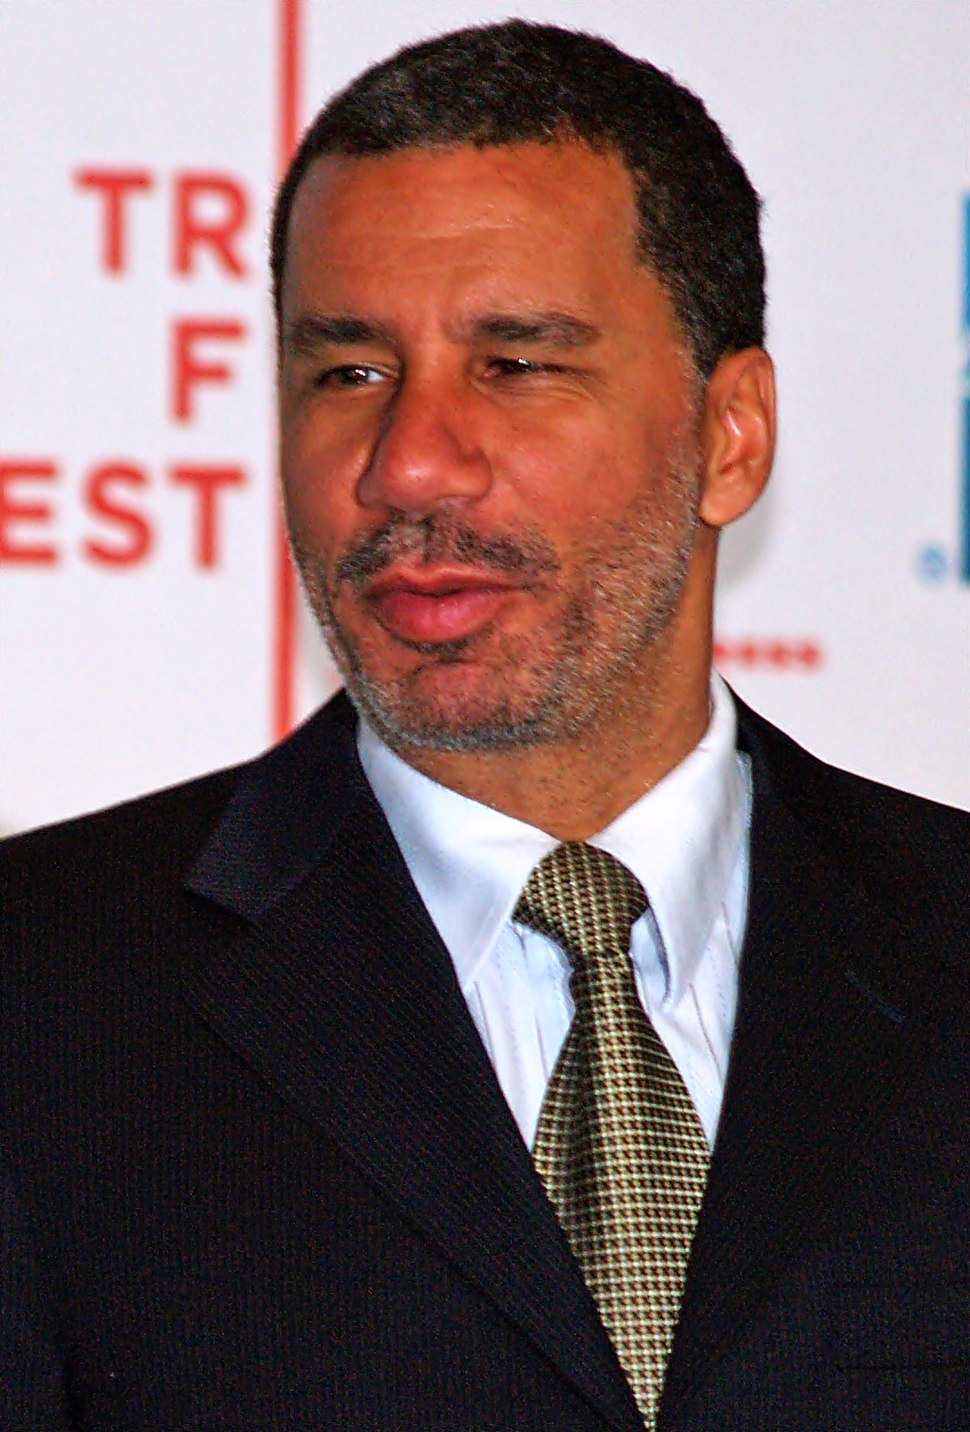 David Paterson 2 by David Shankbone